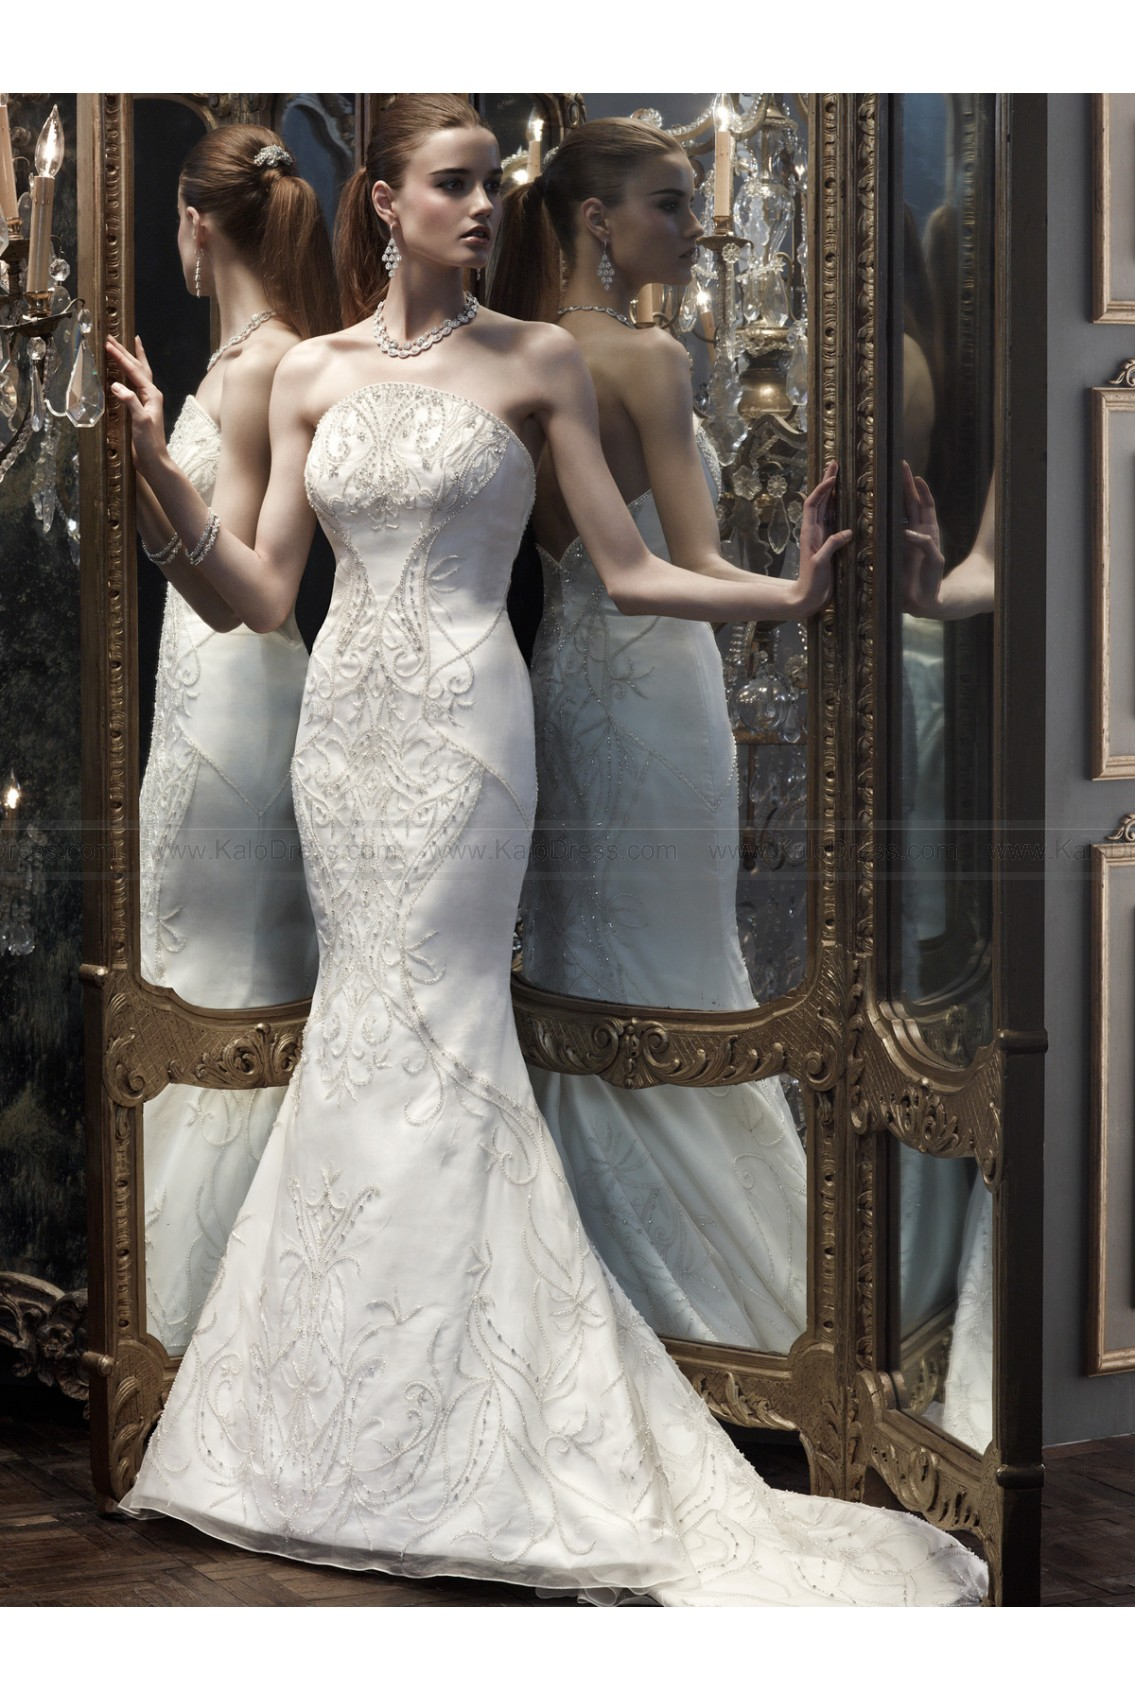 Exquisite Mermaid Bridal Dress CB Couture By Casablanca B066 - Wedding Dresses 2014 New - Formal Wedding Dresses